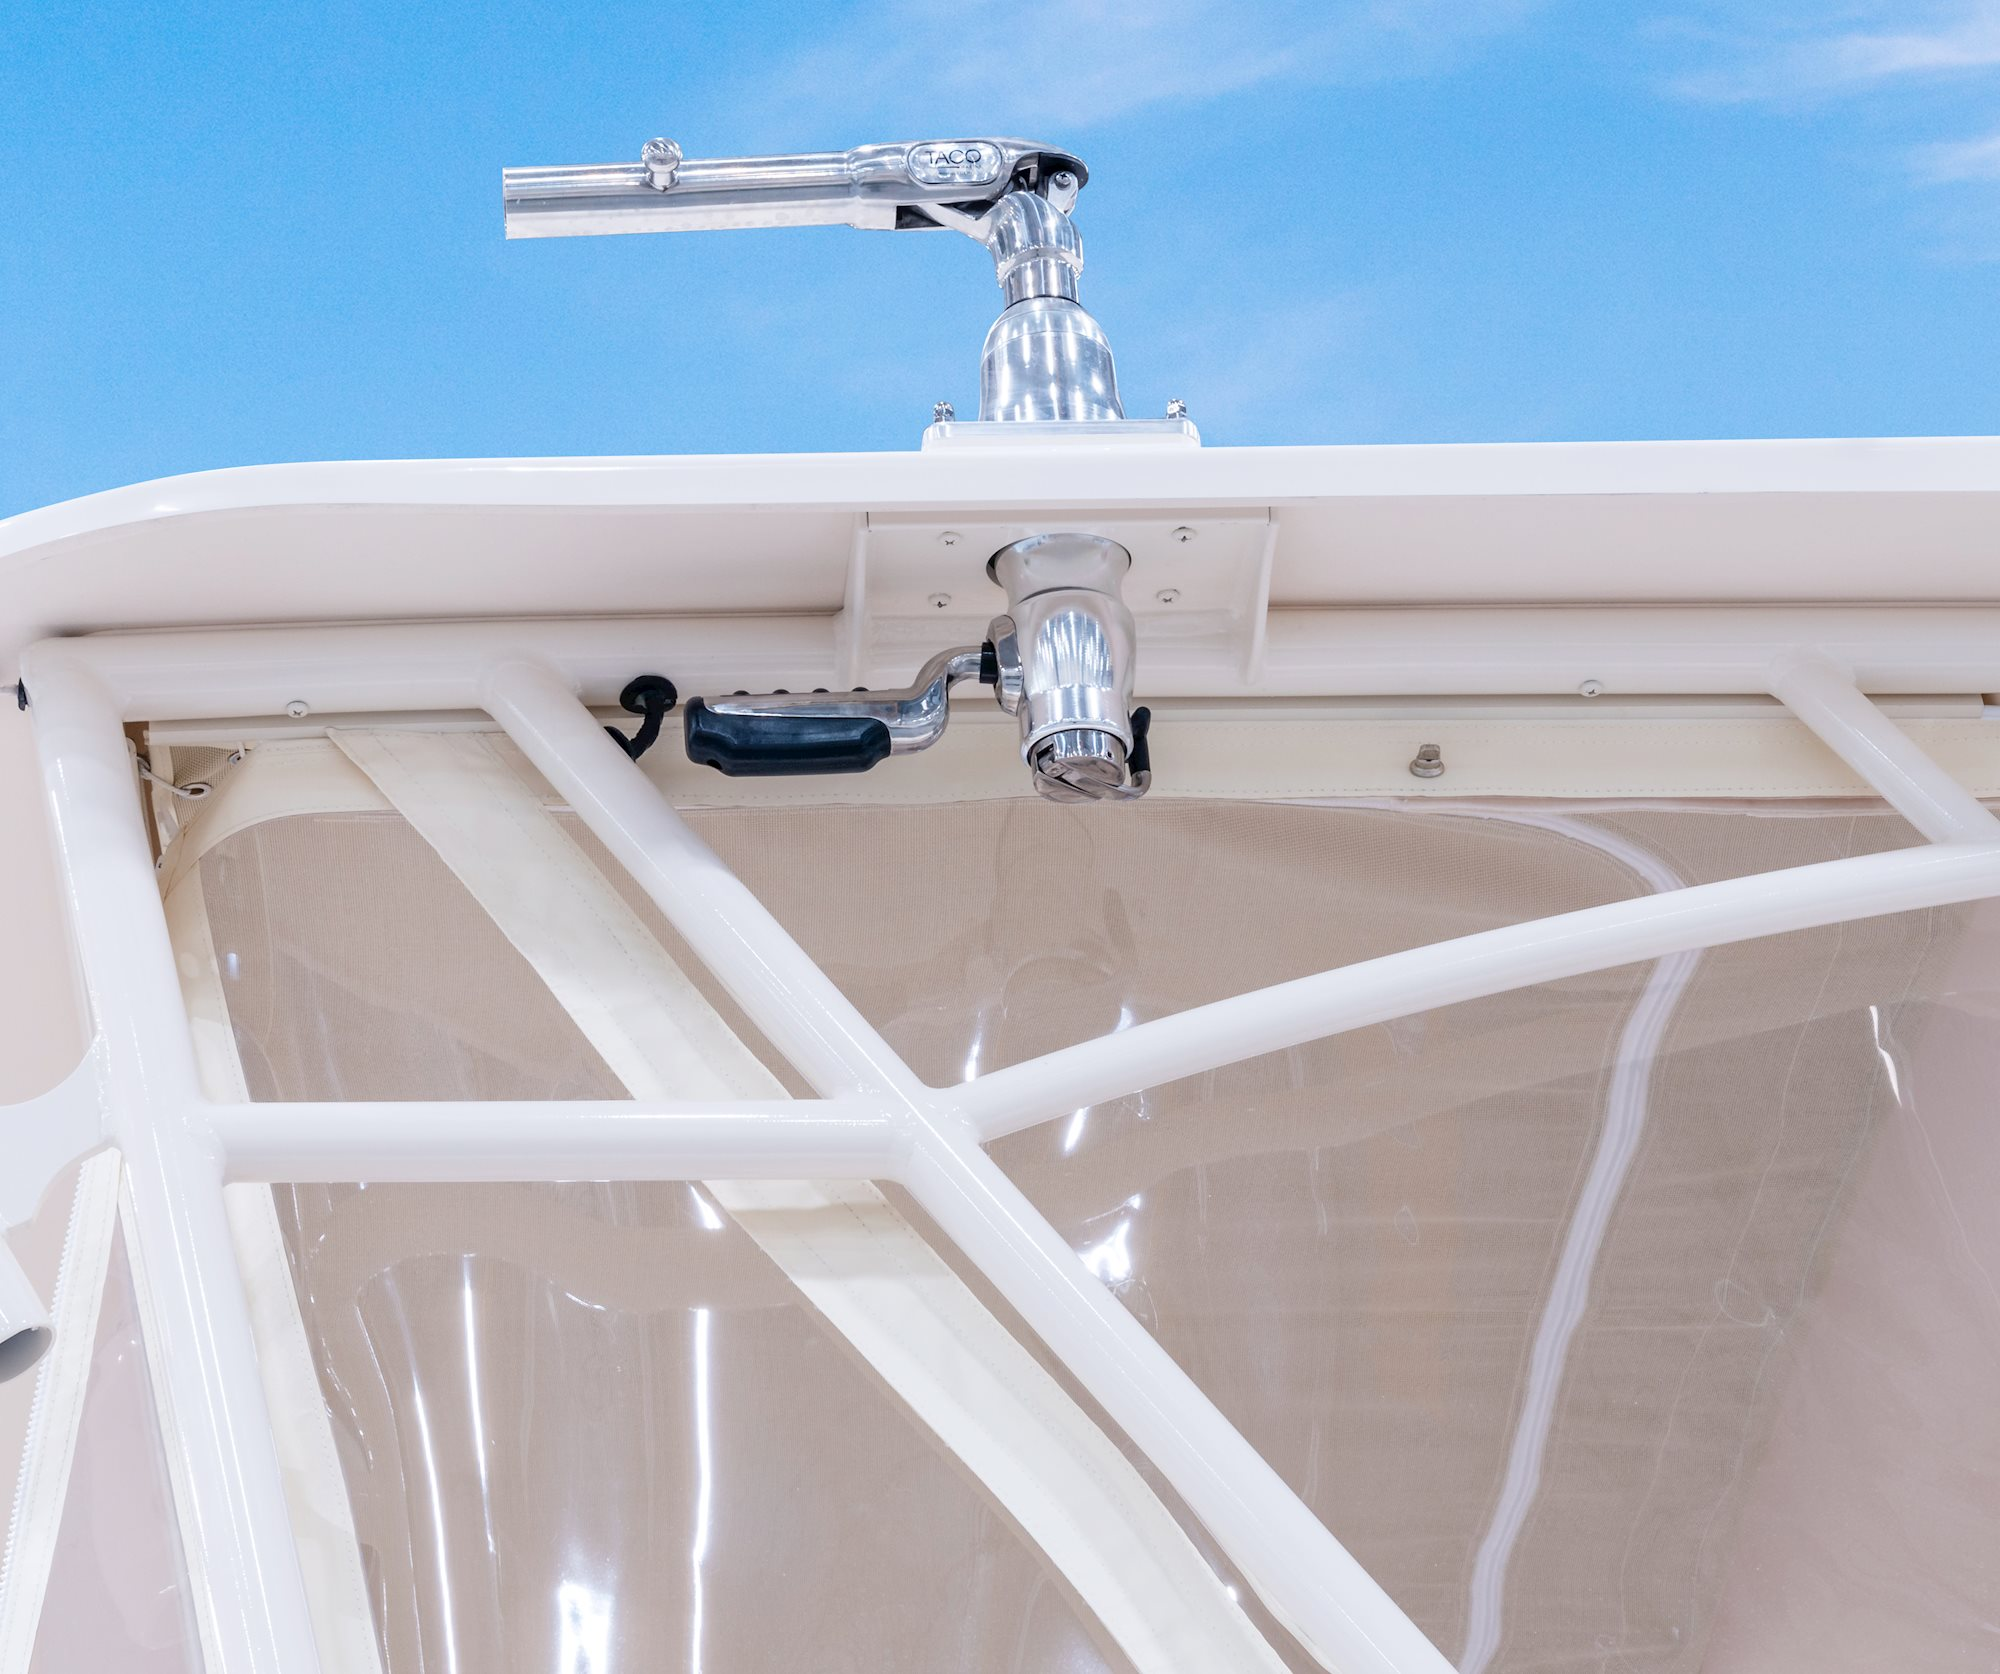 Grady-White Marlin 300 30 foot Walkaround Cabin Boat Outriggers